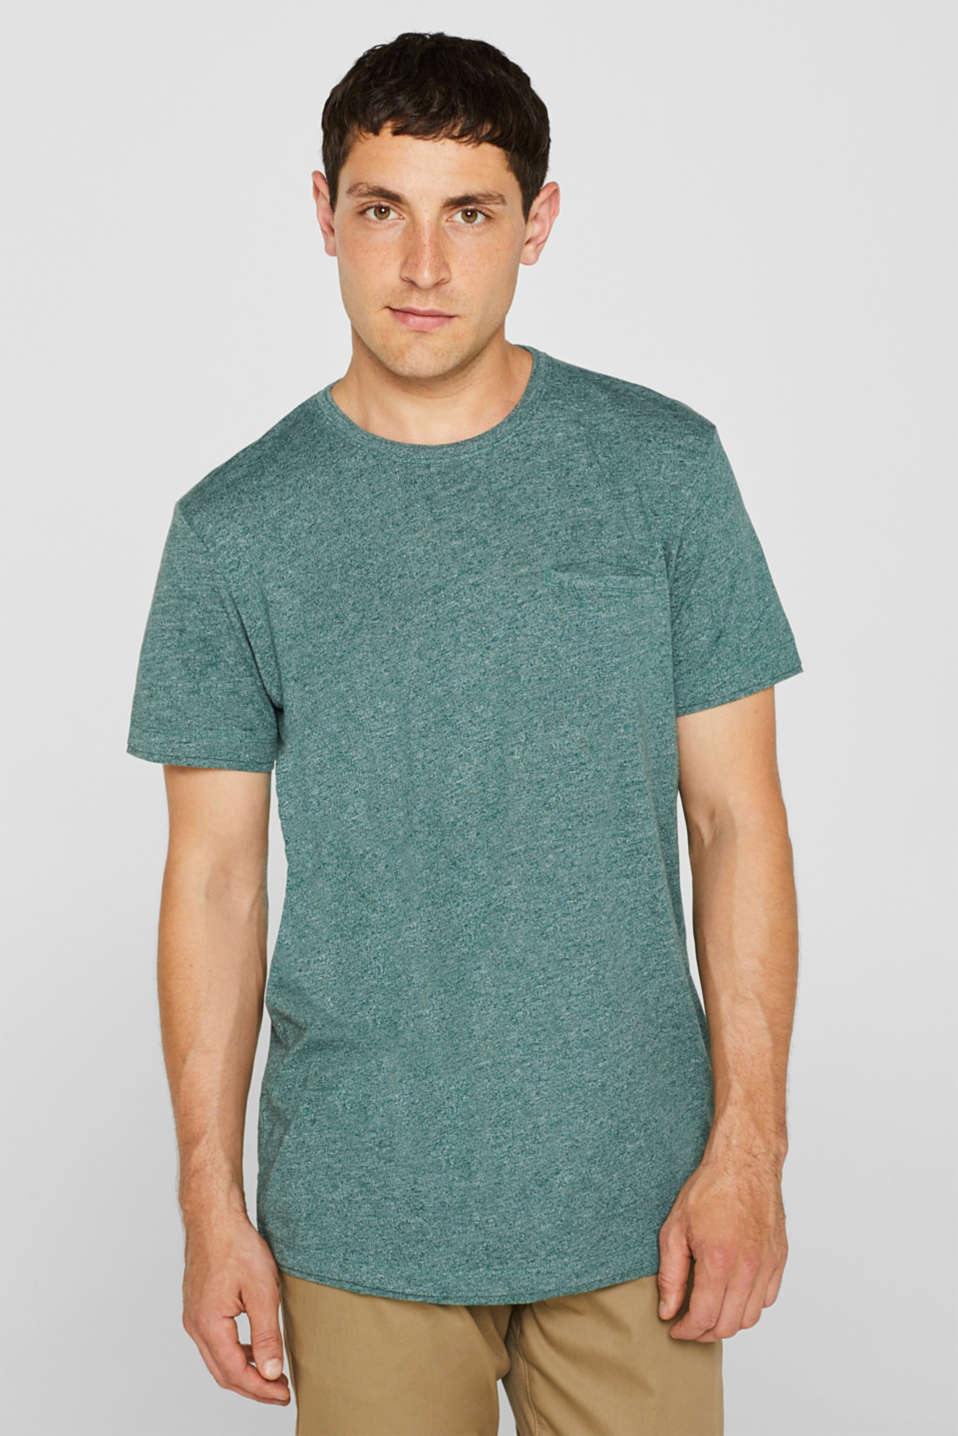 Jersey T-shirt in blended cotton, DUSTY GREEN, detail image number 0